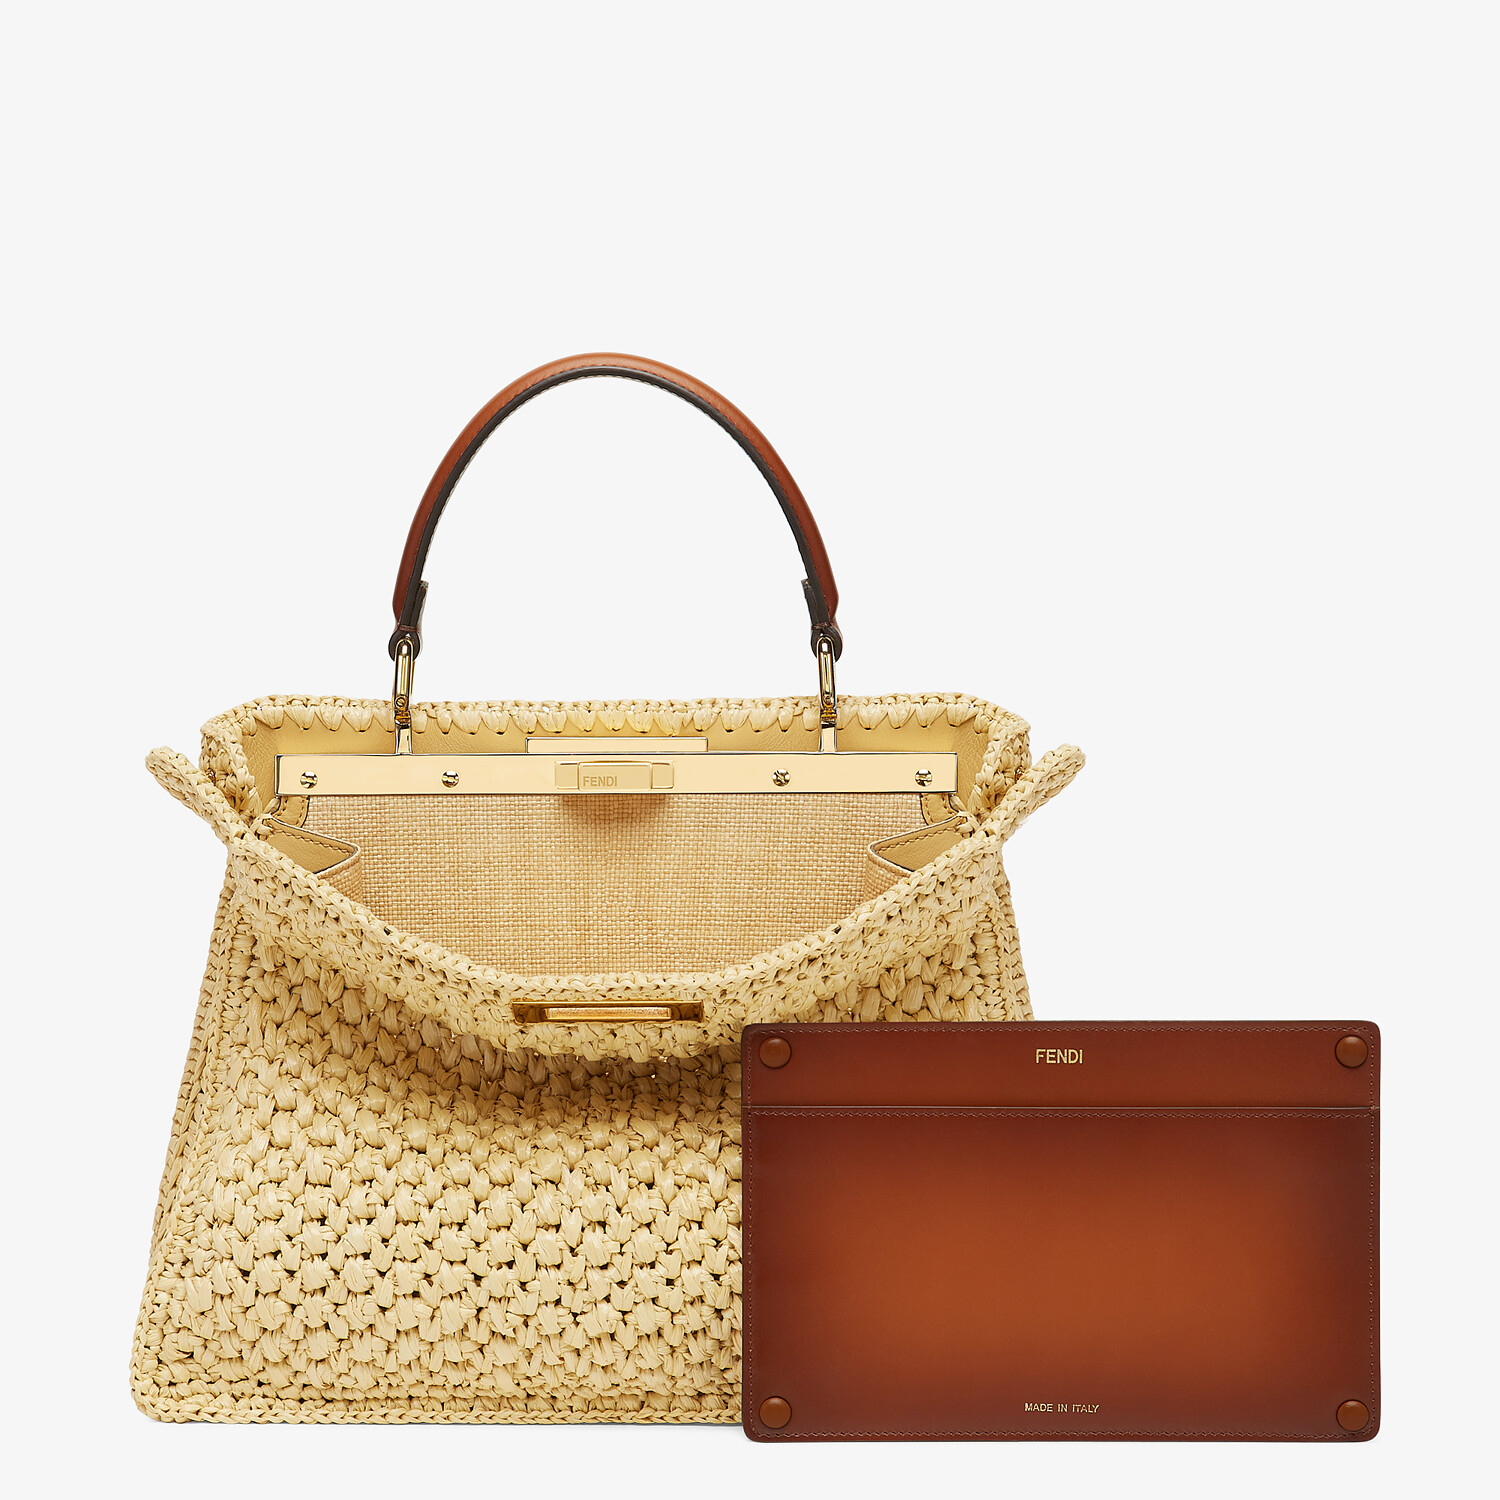 FENDI PEEKABOO ISEEU MEDIUM - Woven straw bag - view 4 detail